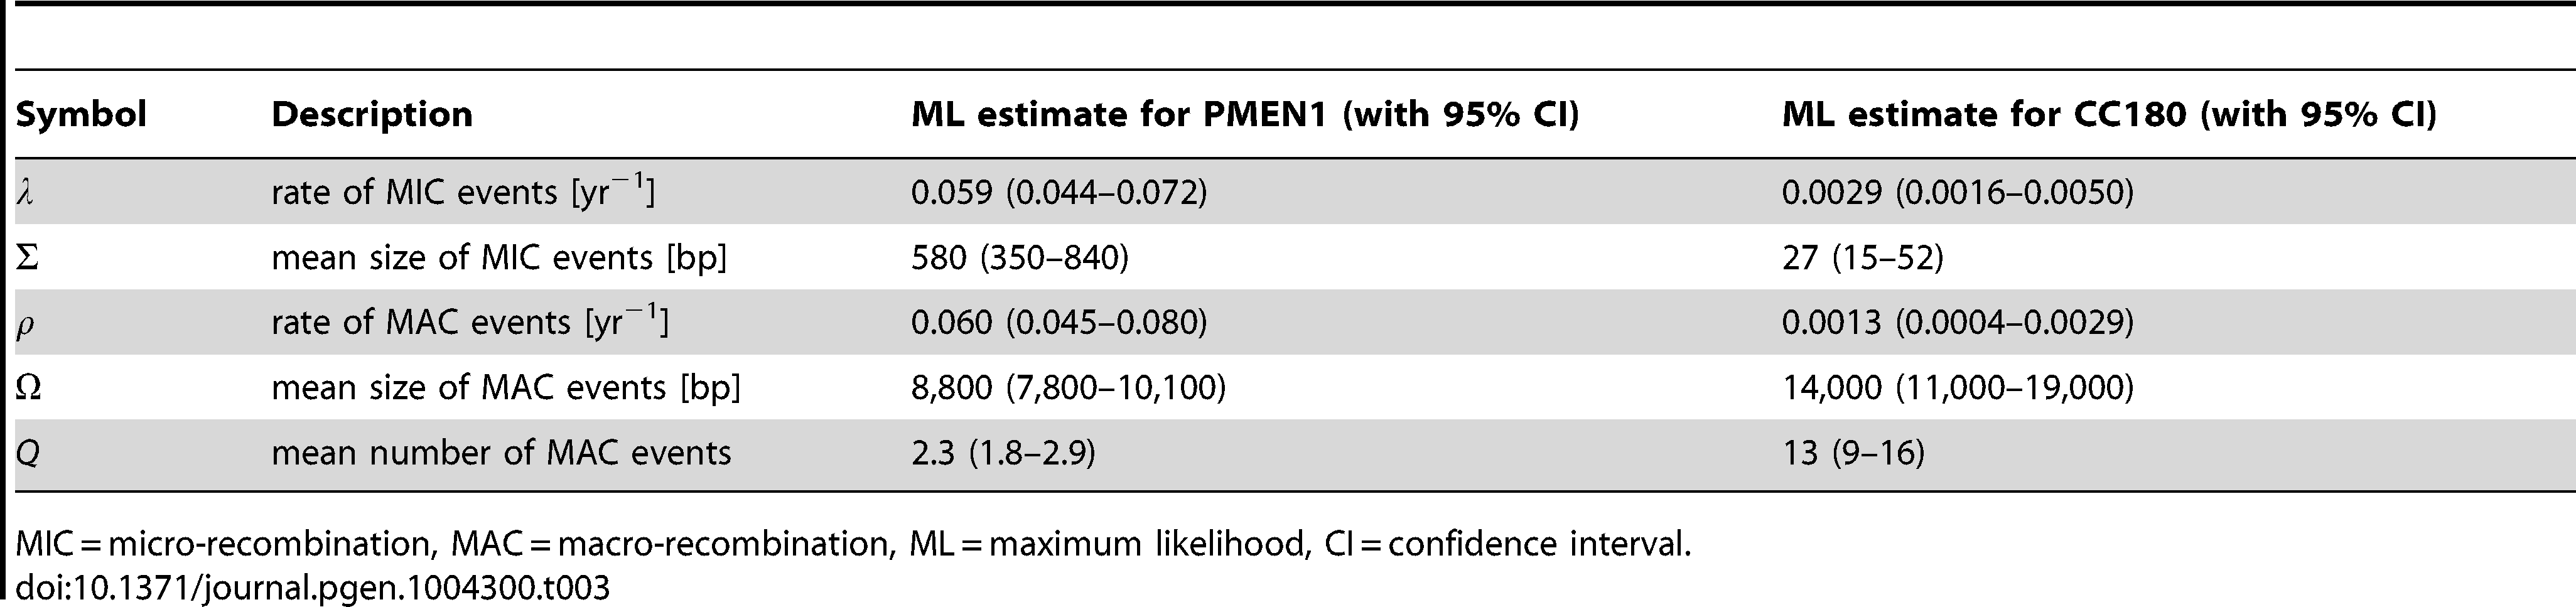 Best fit parameters for the mixture model with micro- and macro-recombination (Model 3) with 95% confidence intervals.